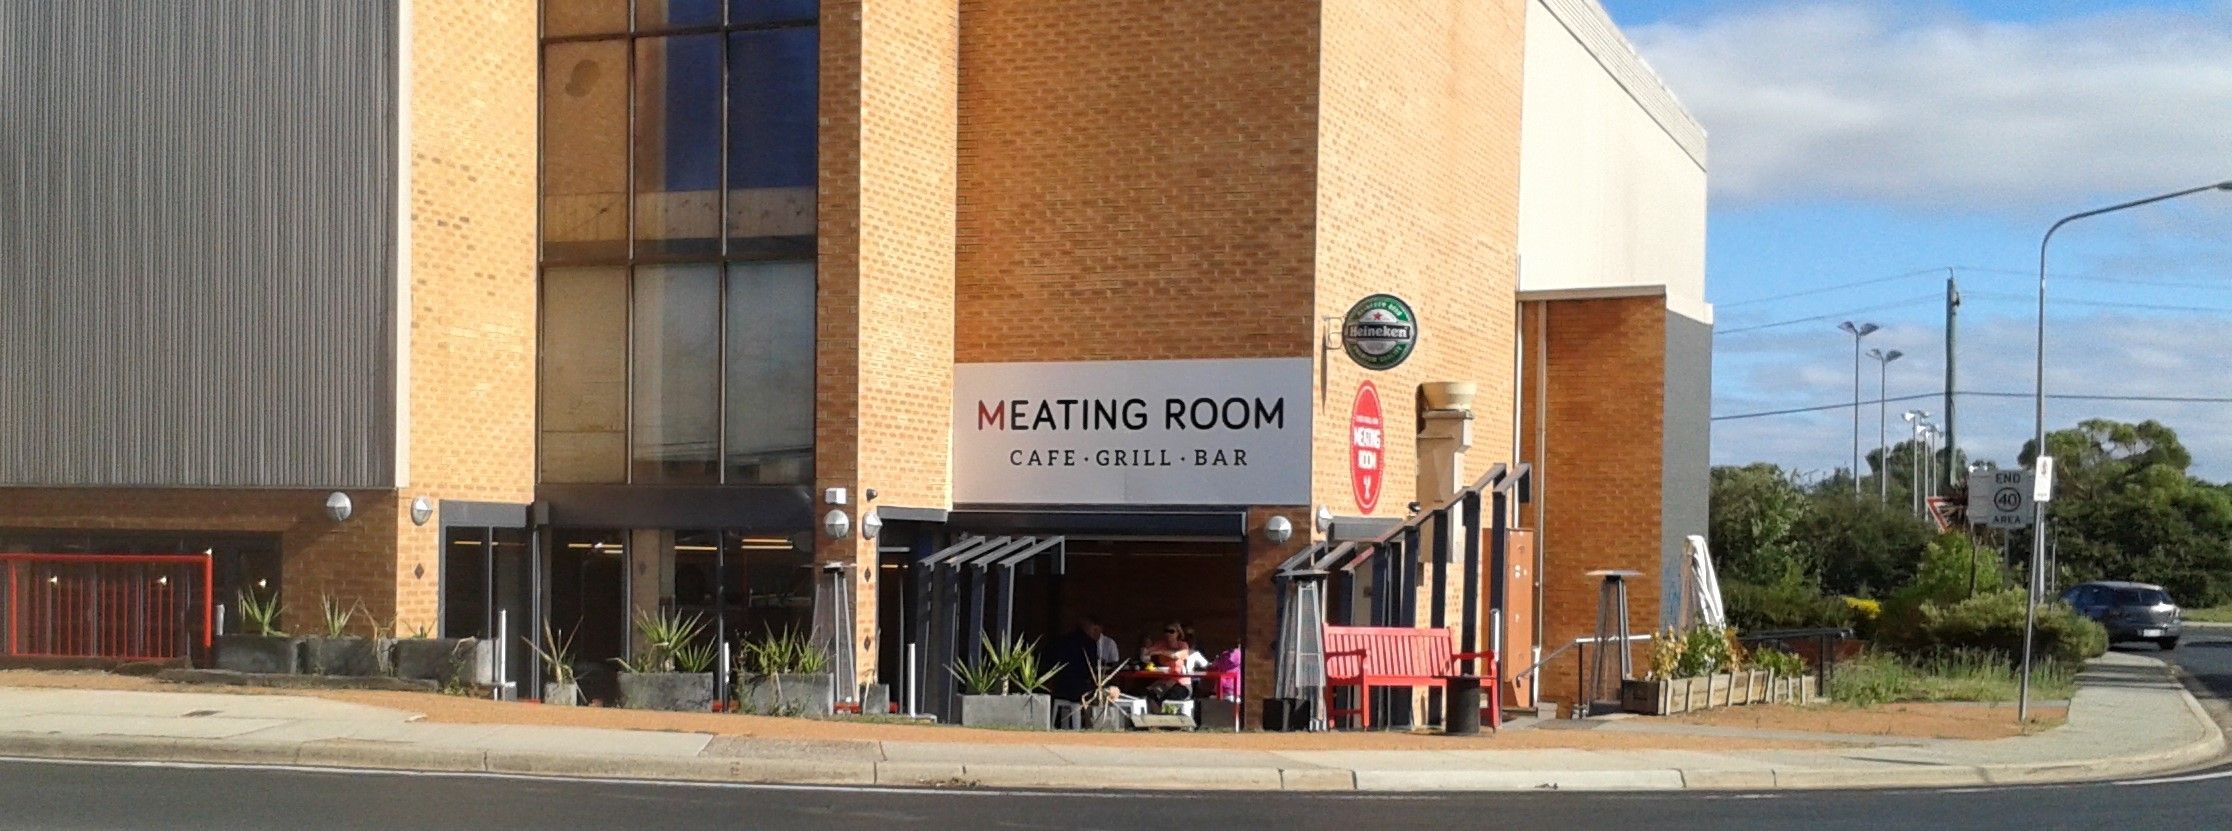 Meating Room Cafe Grill Amp Bar Canberra